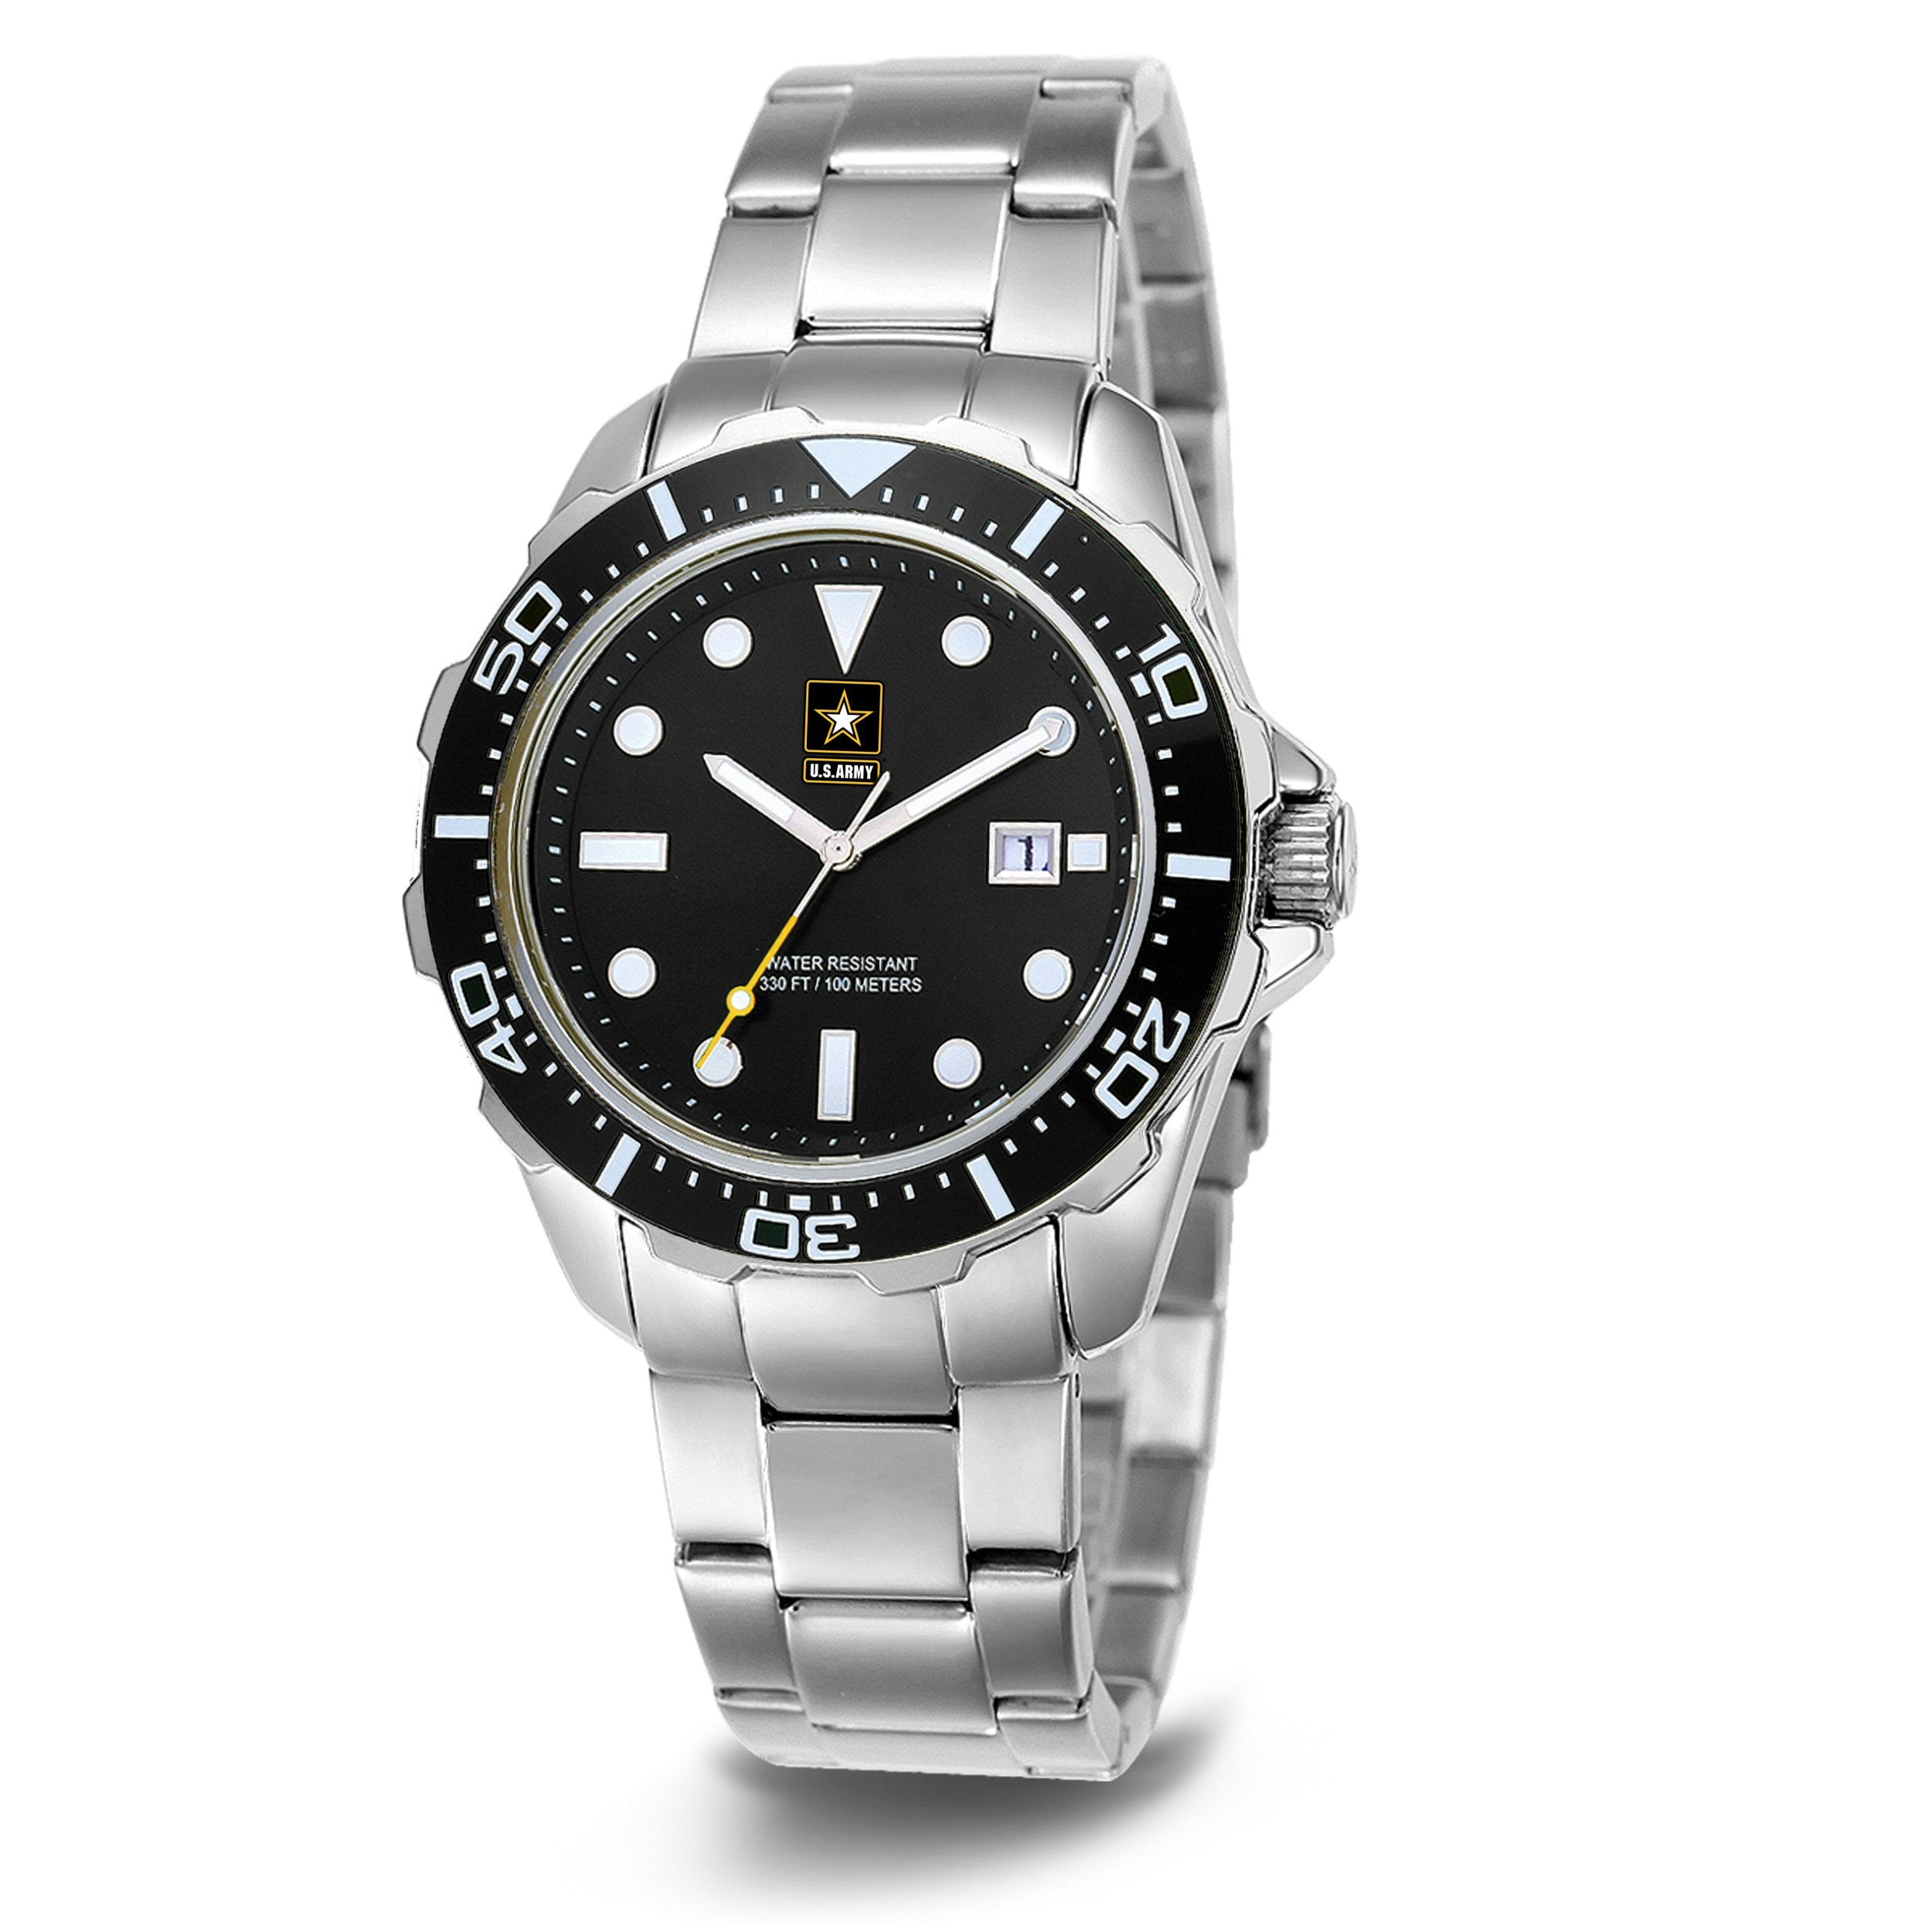 U.S. Army C39 | Analog Display Quartz Watch with Unidirectional Rotating Bezel and Metal Bracelet